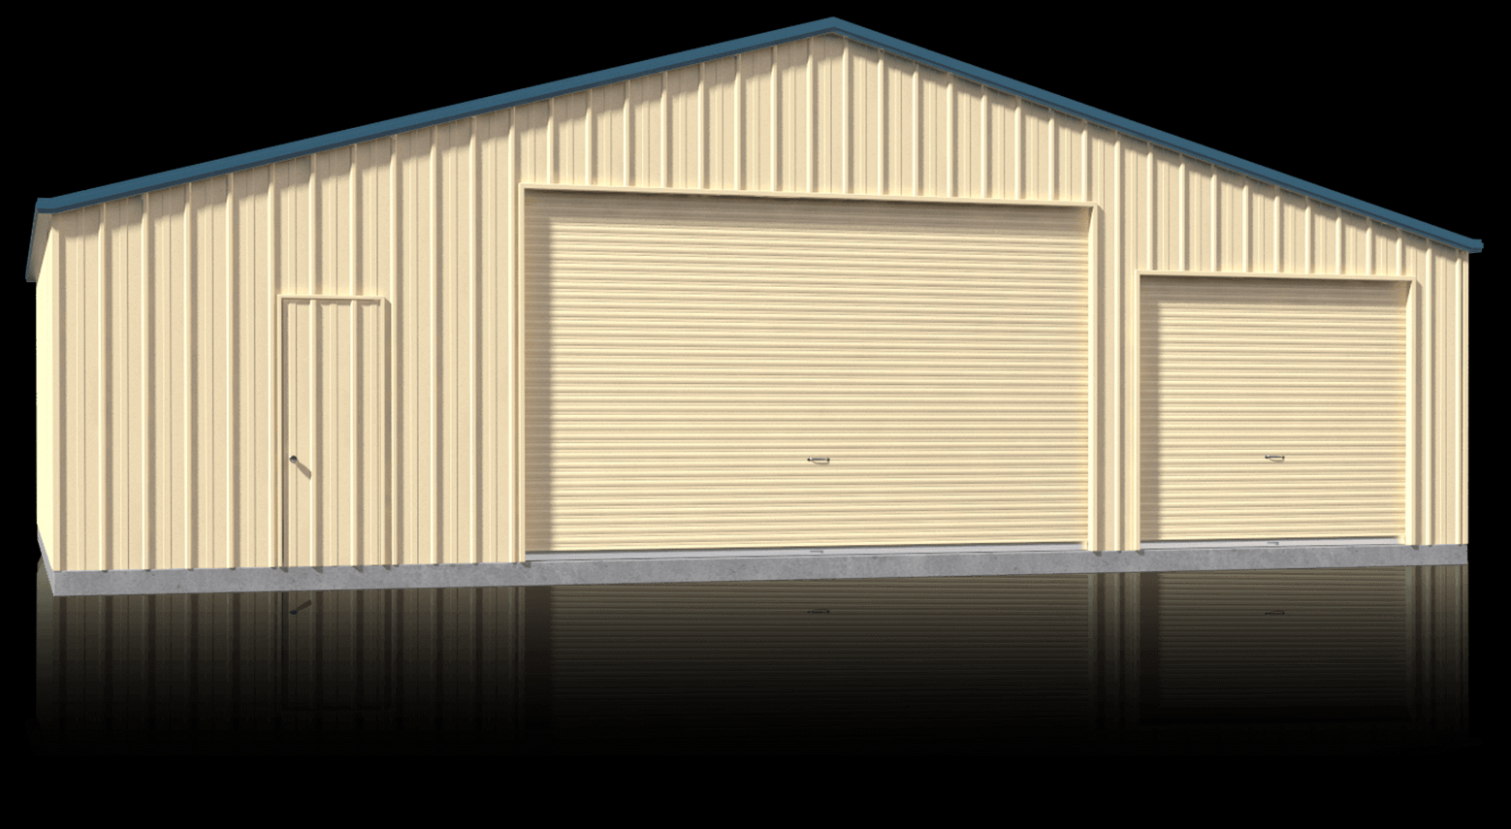 Sheds And Garages Guaranteed By Titan Garages & Sheds Modern Carports Sunshine